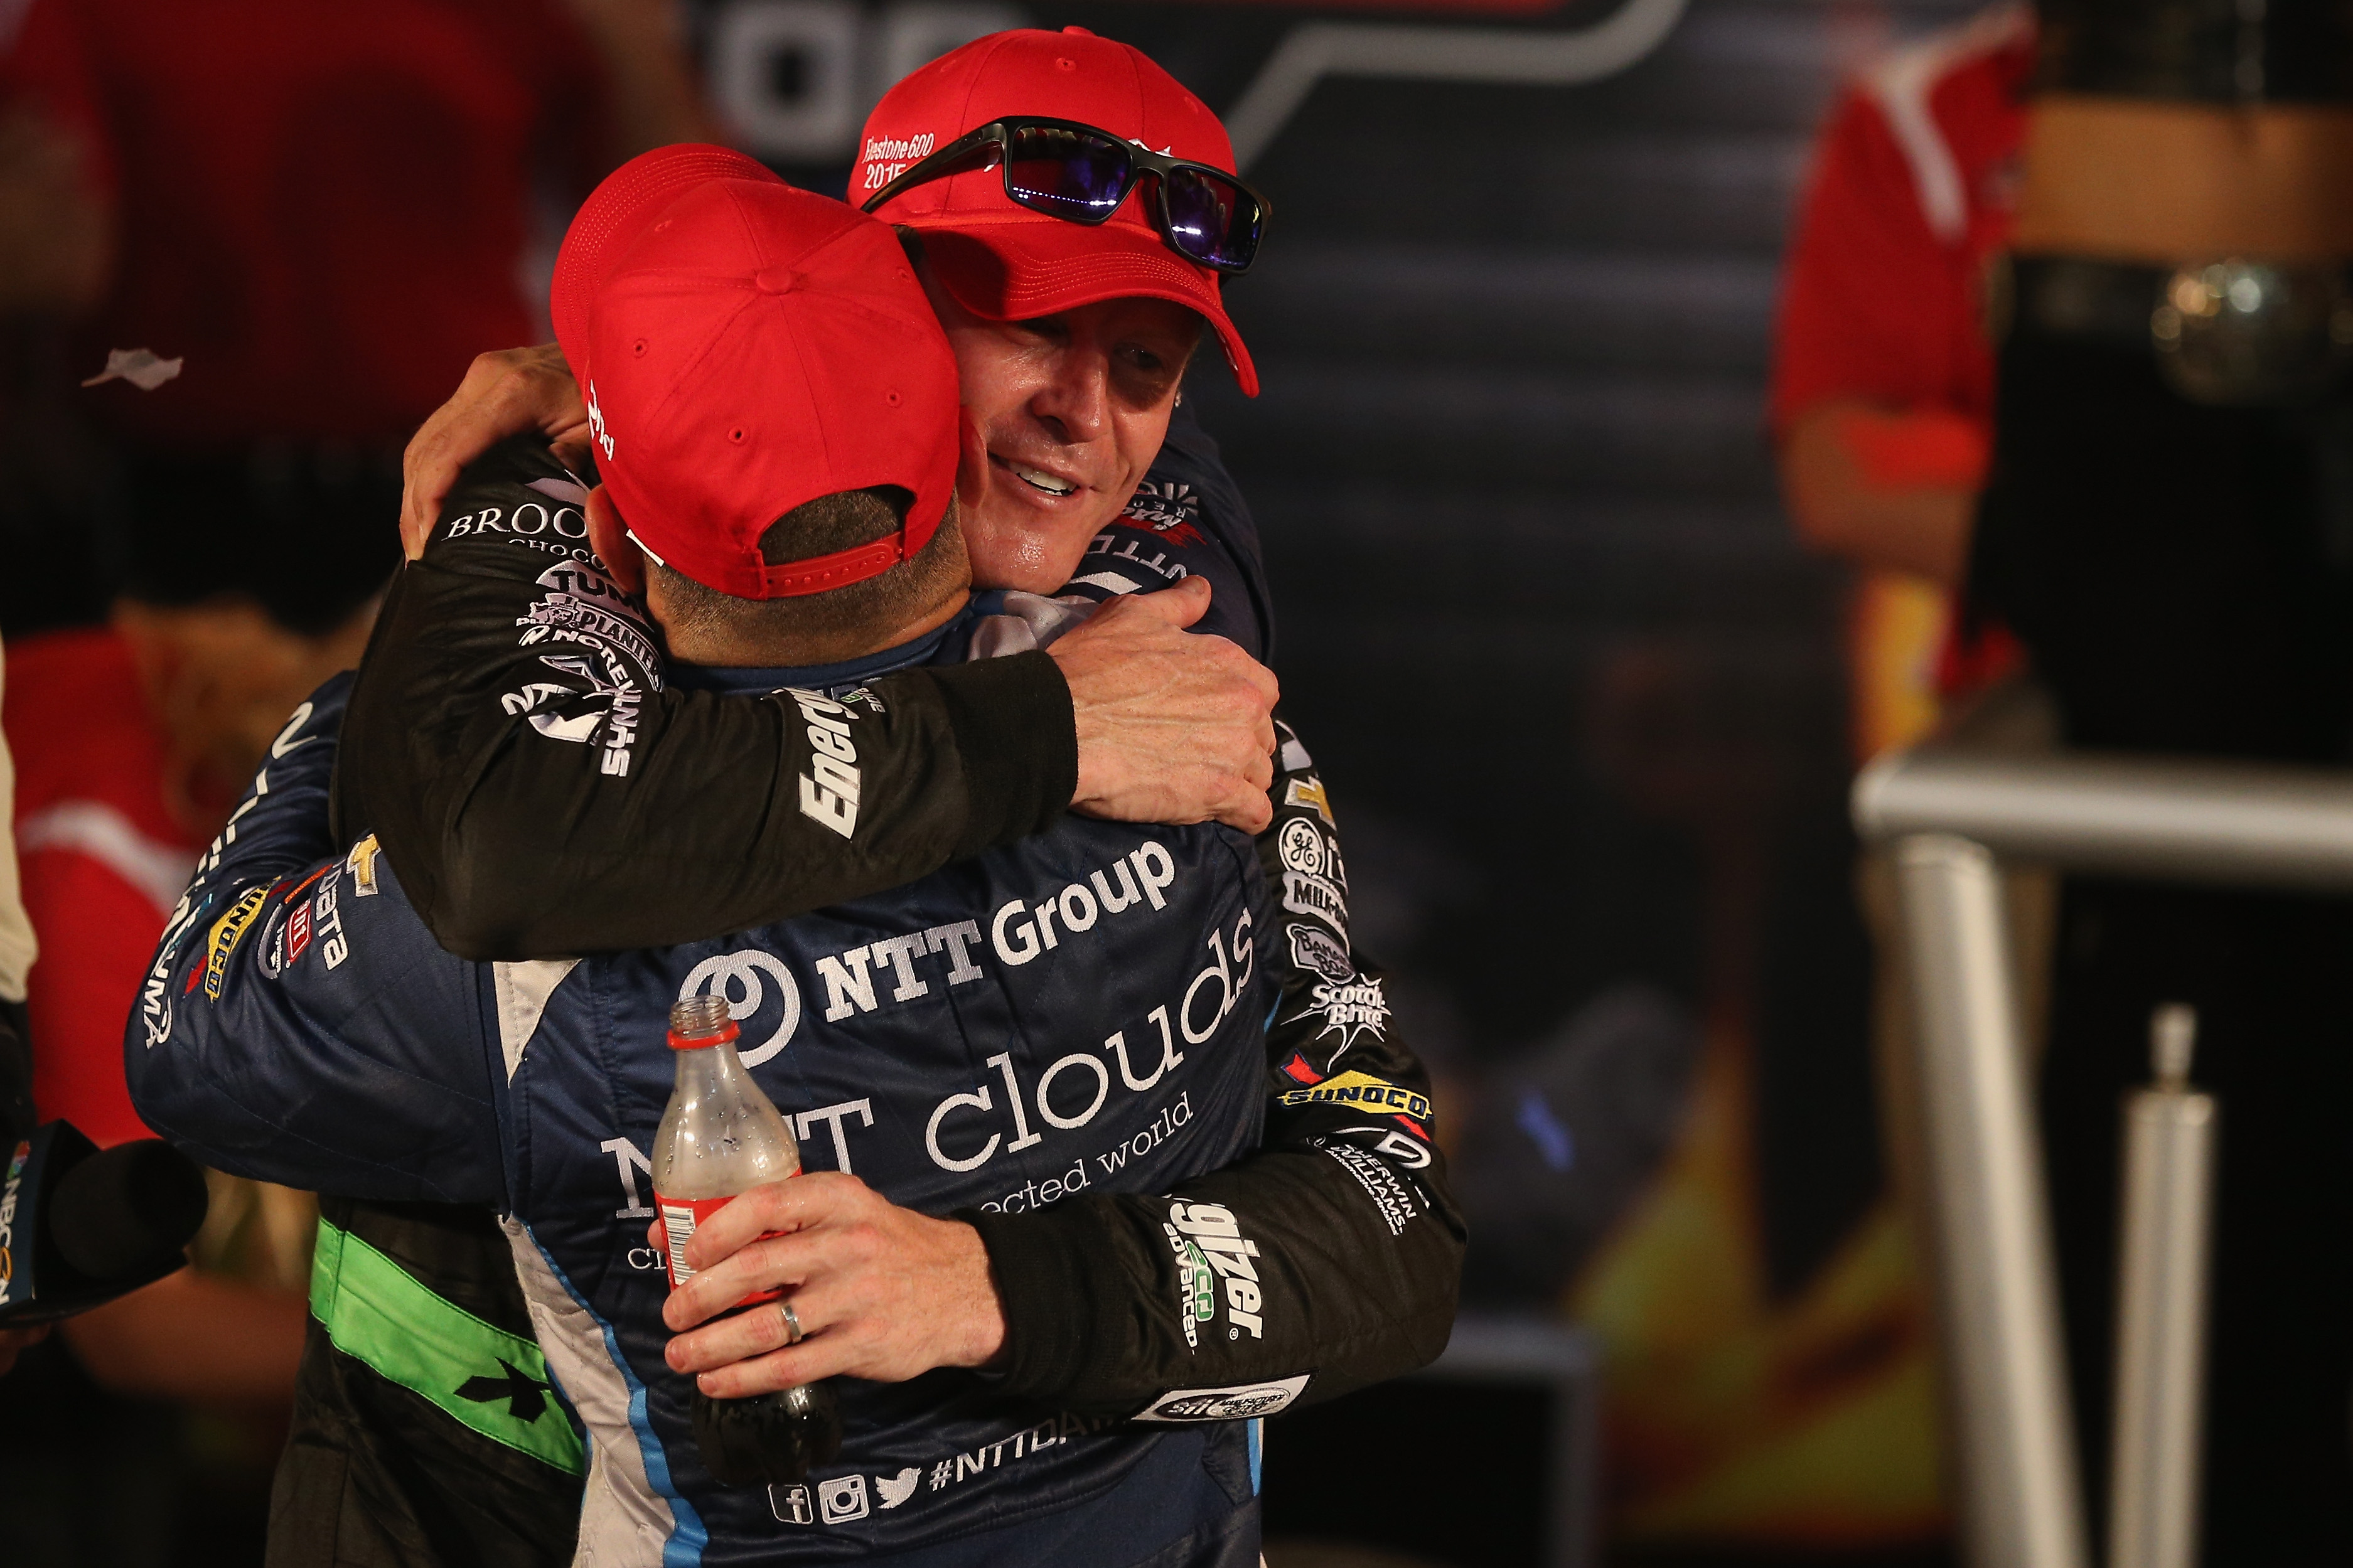 Tony Kanaan (foreground) congratulates Chip Ganassi Racing teammate and race winner Scott Dixon. (Photo by Patrick Smith/Getty Images for Texas Motor Speedway)